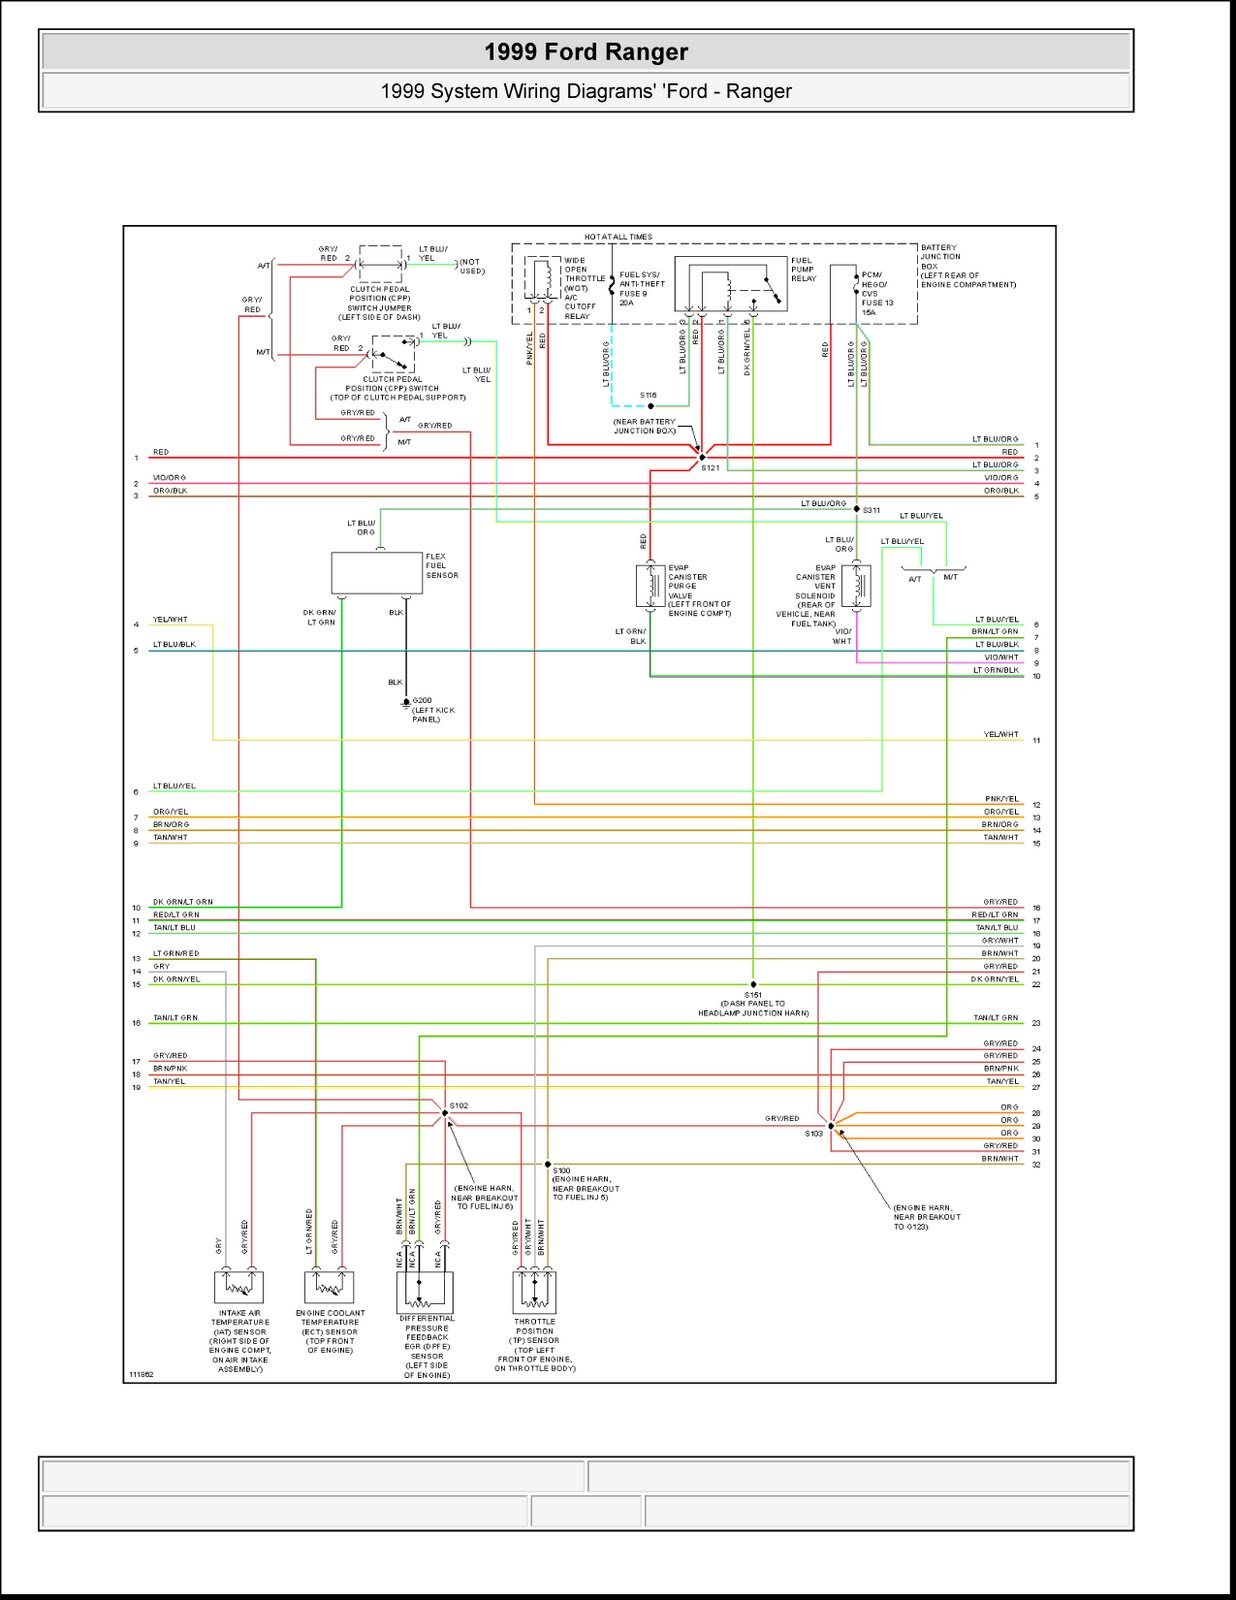 1999 Ford Ranger System Wiring Diagrams 4 Images Computer Diagram